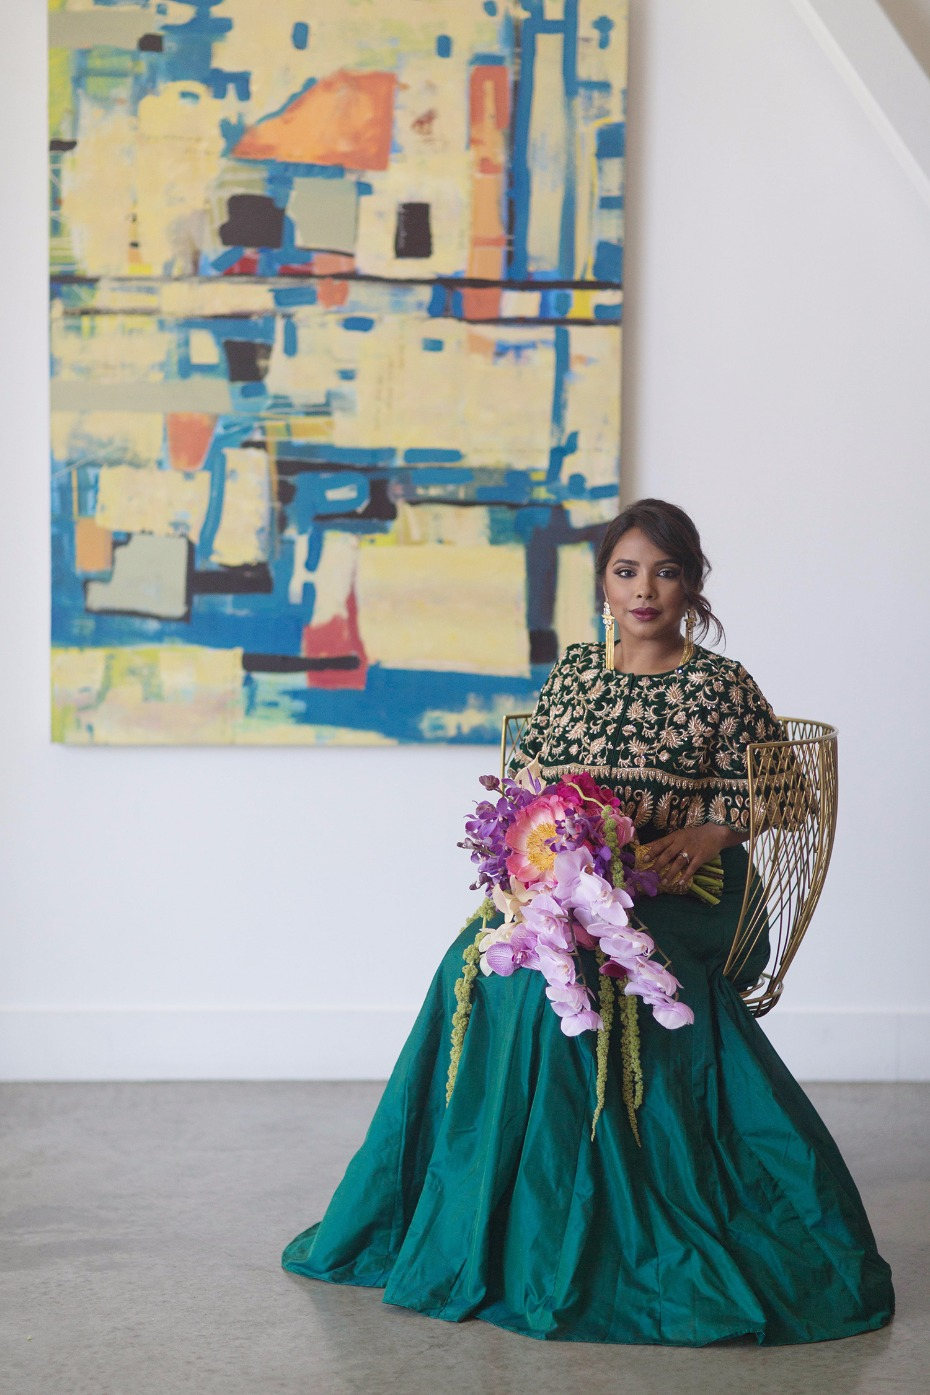 Custom emerald gown by Ruchita Dagli